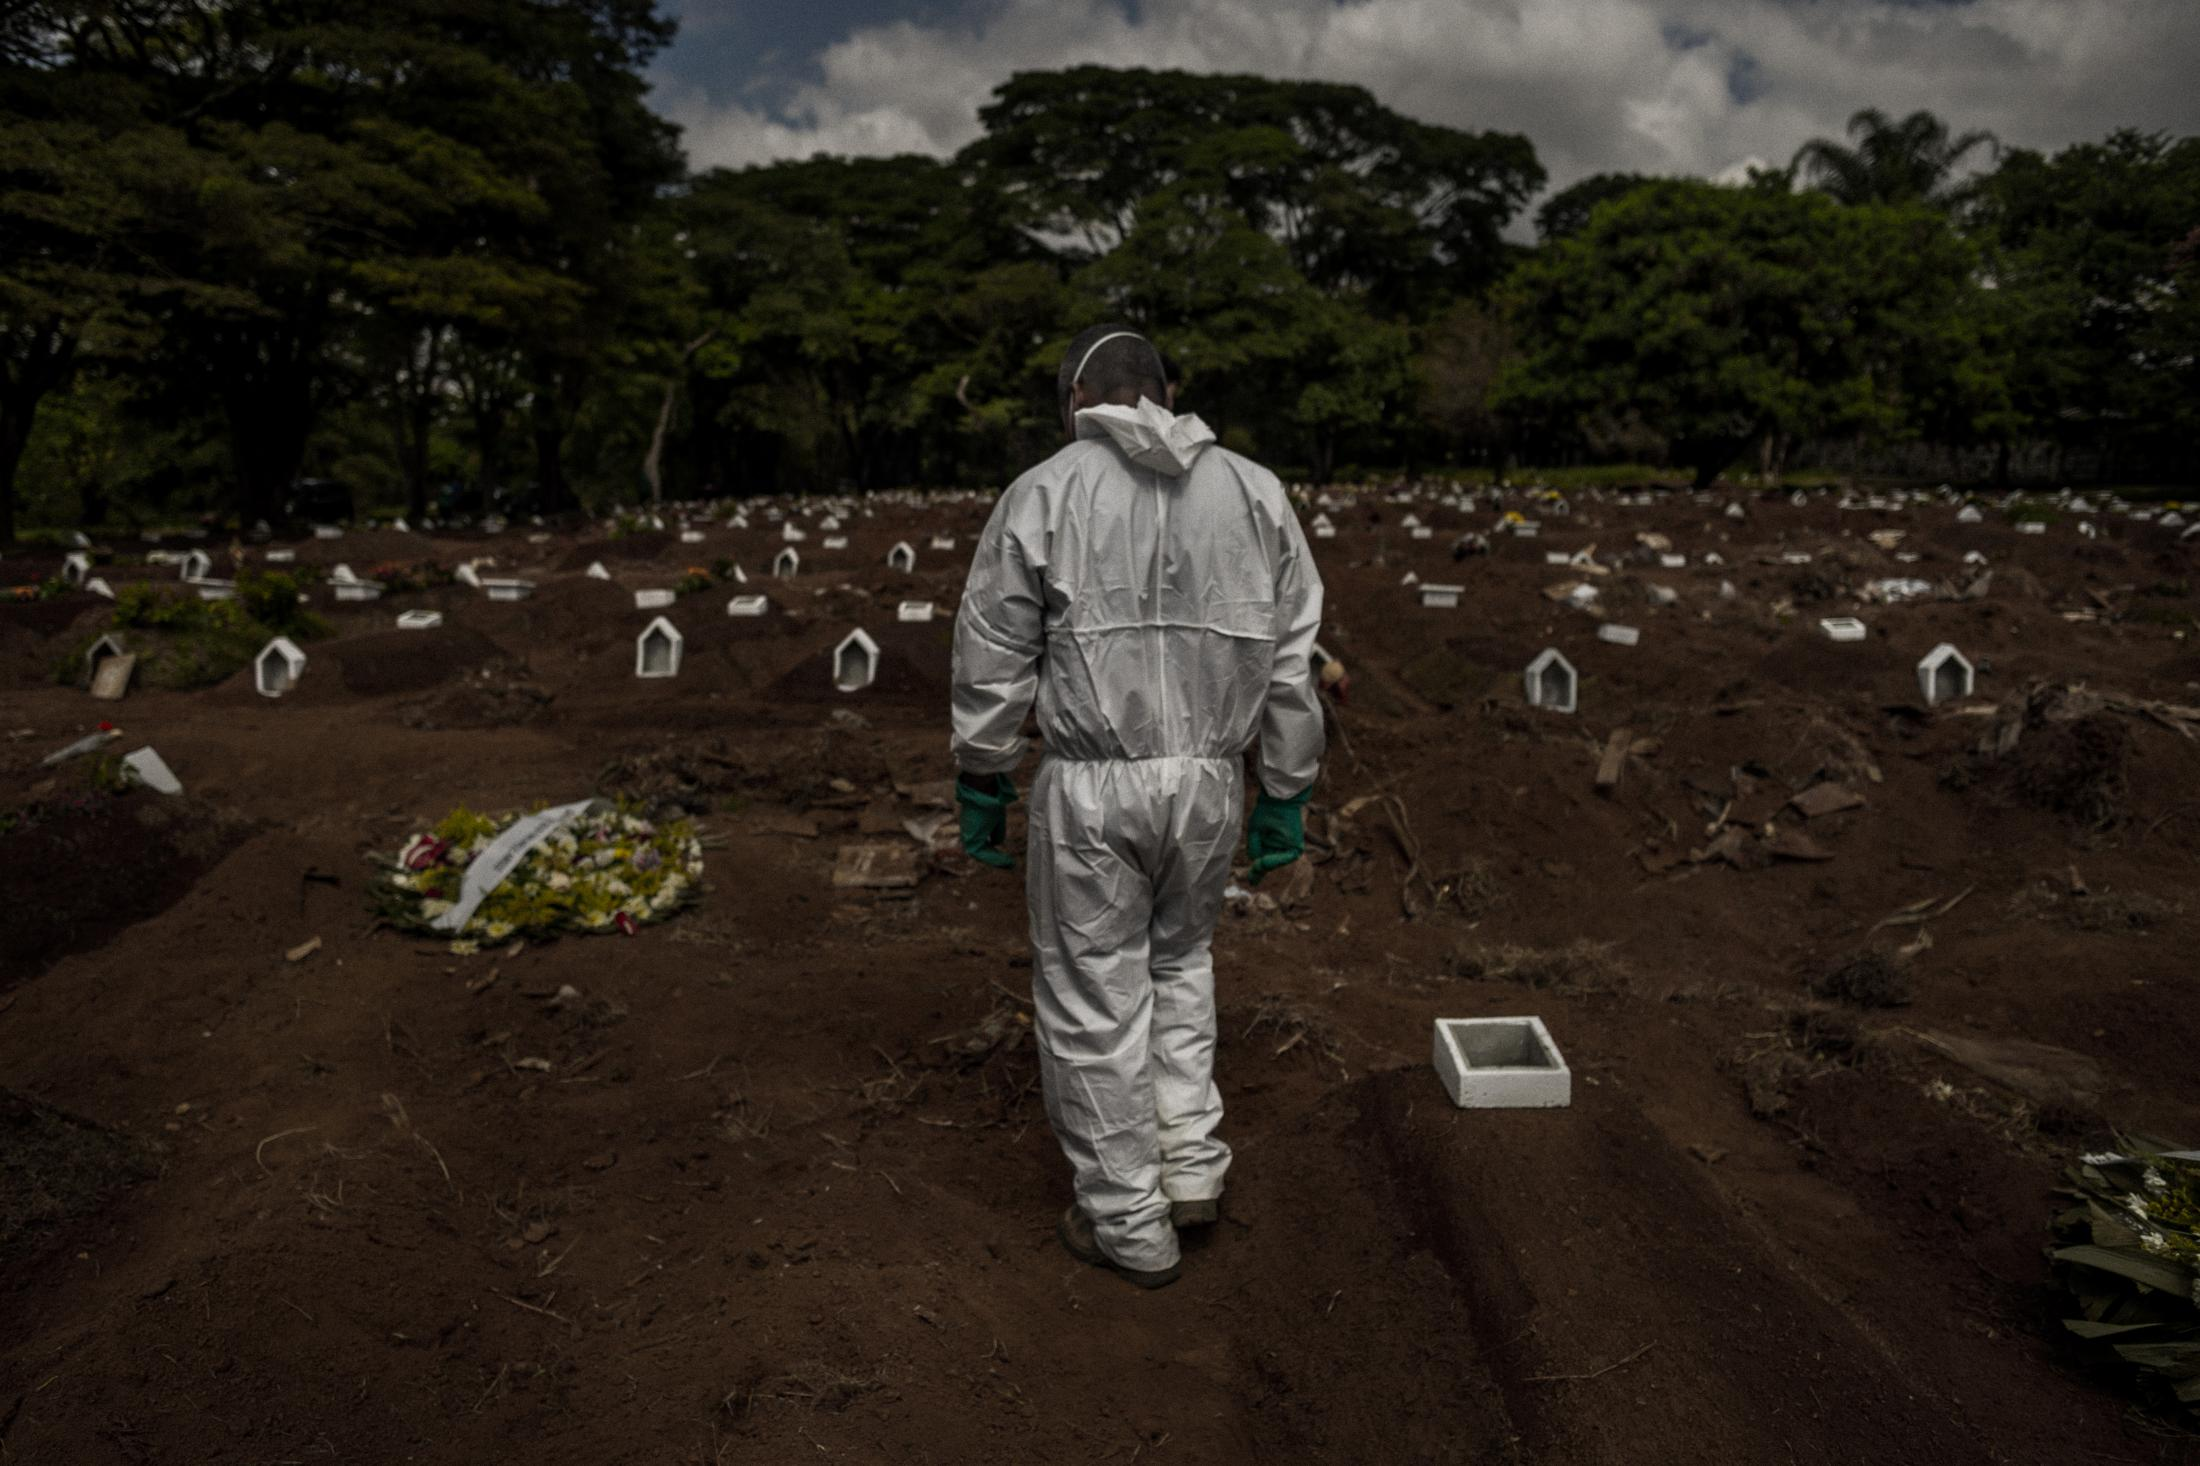 May 15, 2020. A gravedigger rests during the constant flow of burials in São Paulo during the coronavirus crisis in April 2020. Aerial images of Vila Formosa, the largest cemetery in Latin America, were seen around the world at the beginning of the new coronavirus pandemic in Brazil, showing hundreds of open-air graves. The public focused on the victims of Covid-19, but little attention was paid to the silent army of gravediggers, last foot soldiers in a lost war that killed more than 200,000 people in the country by January 2020, according to the Brazilian Ministry of Health. Responsible for burying up to 80 people a day during the crisis, the Vila Formosa Gravediggers have the lowest salary in the city of São Paulo, earning less than $250 a month in a job that risks their lives and their mental health. Alcoholism and depression are part and parcel of their work. Names in this report have been changed to protect identities.